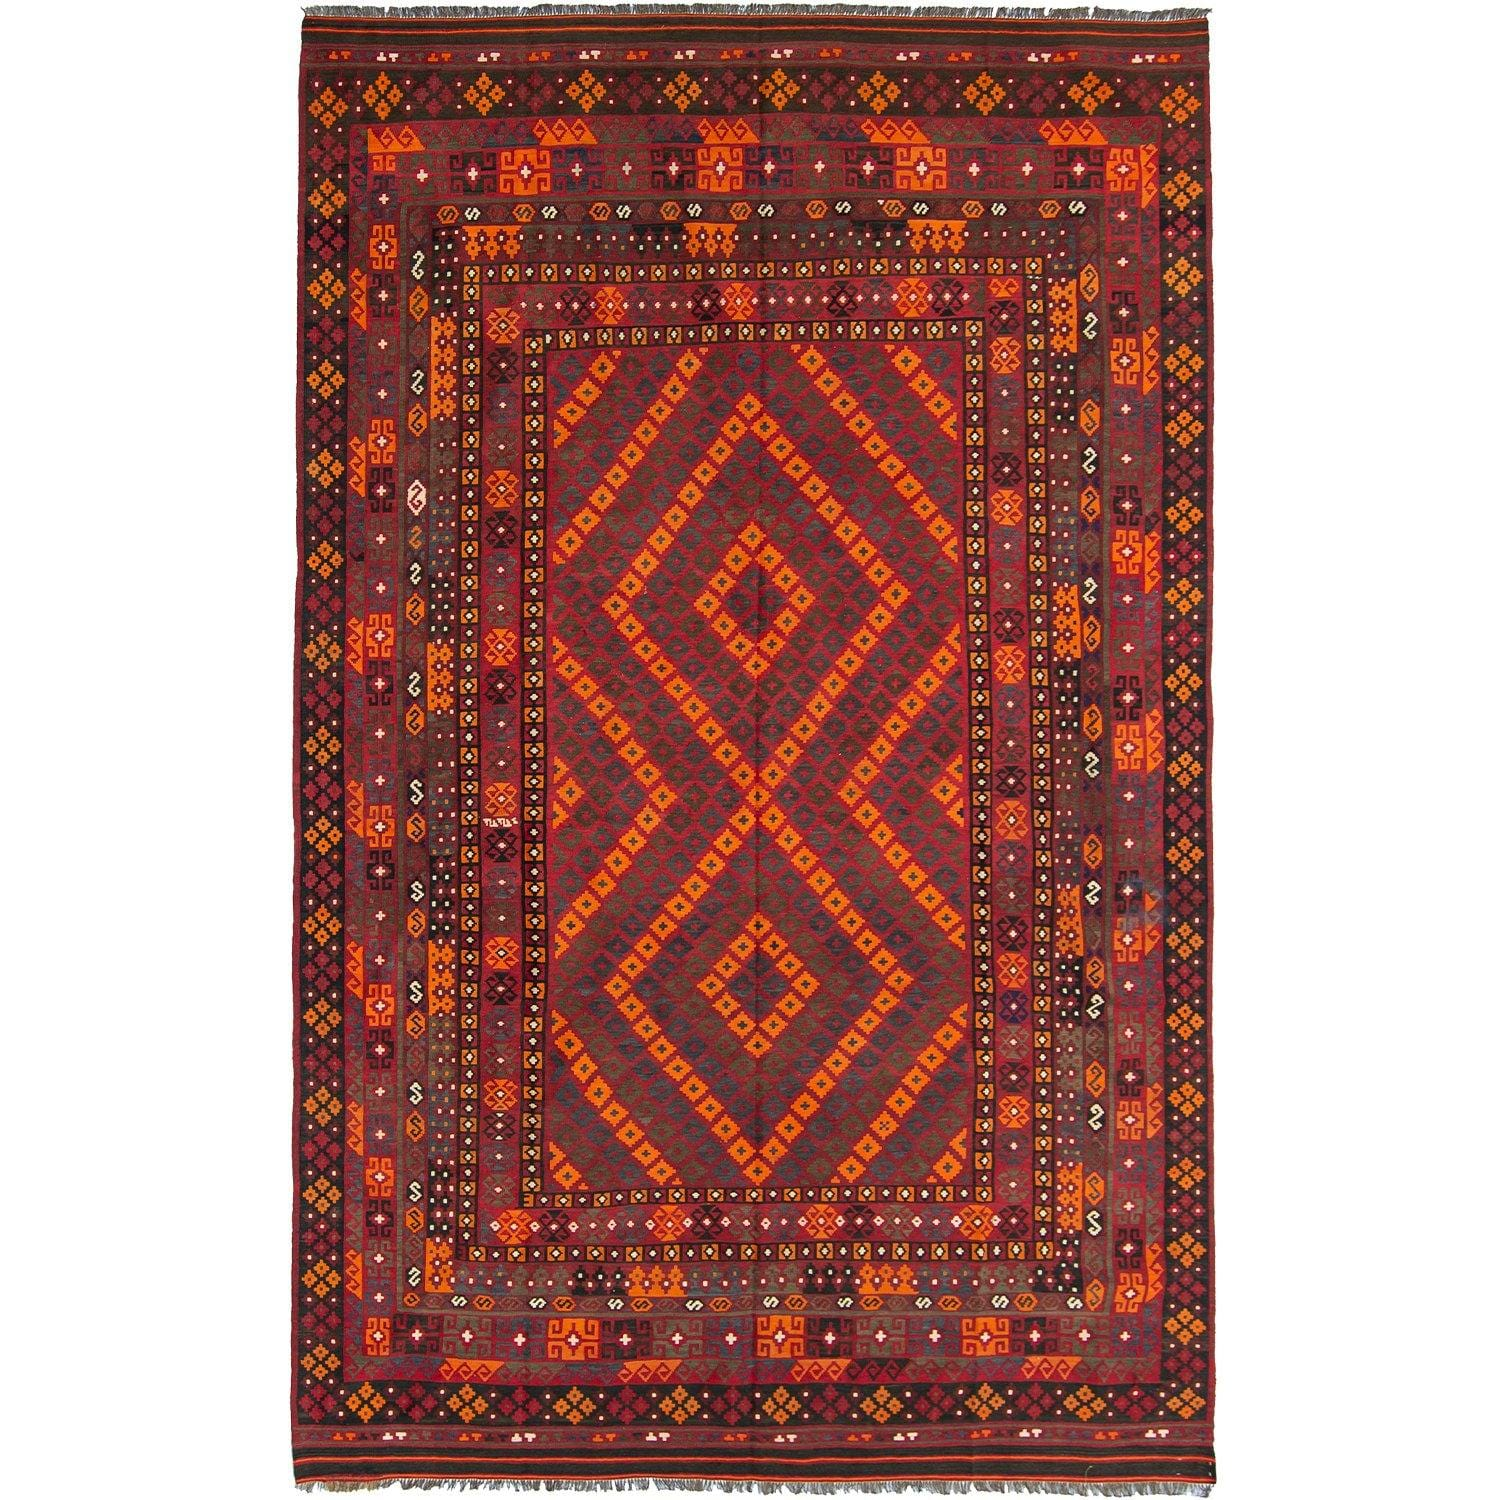 Fine Hand-woven 100% Wool Kilim Rug 262cm x 403cm Persian-Rug | House-of-Haghi | NewMarket | Auckland | NZ | Handmade Persian Rugs | Hand Knotted Persian Rugs